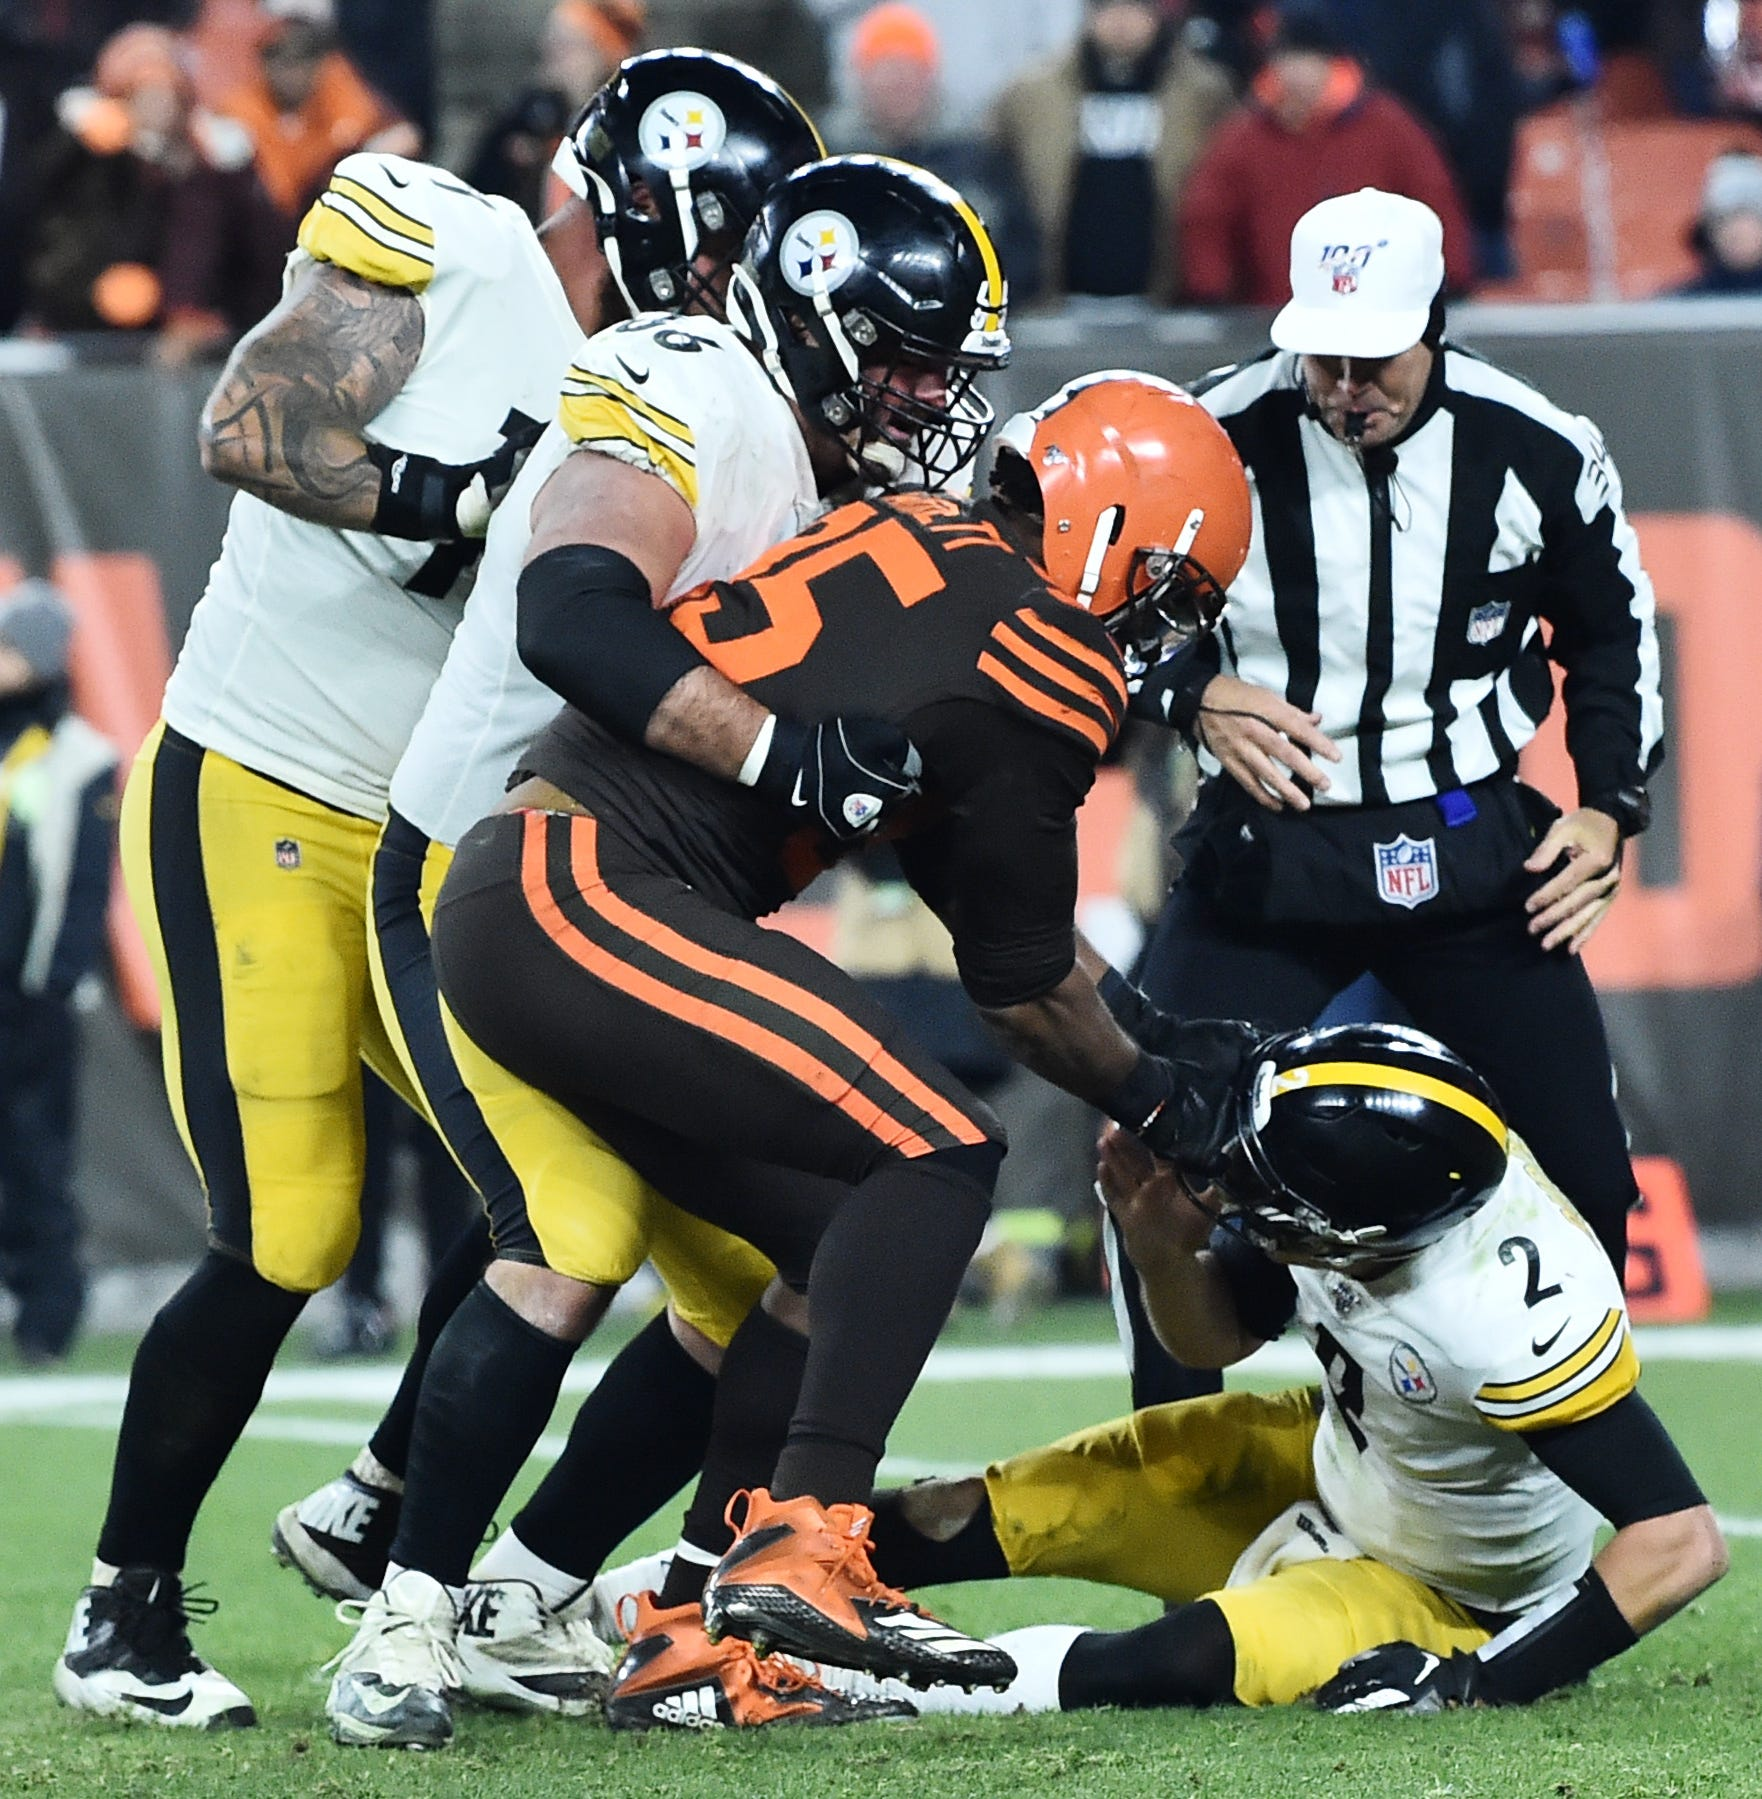 As we await Myles Garrett's punishment, these are the longest NFL suspensions for on-field incidents